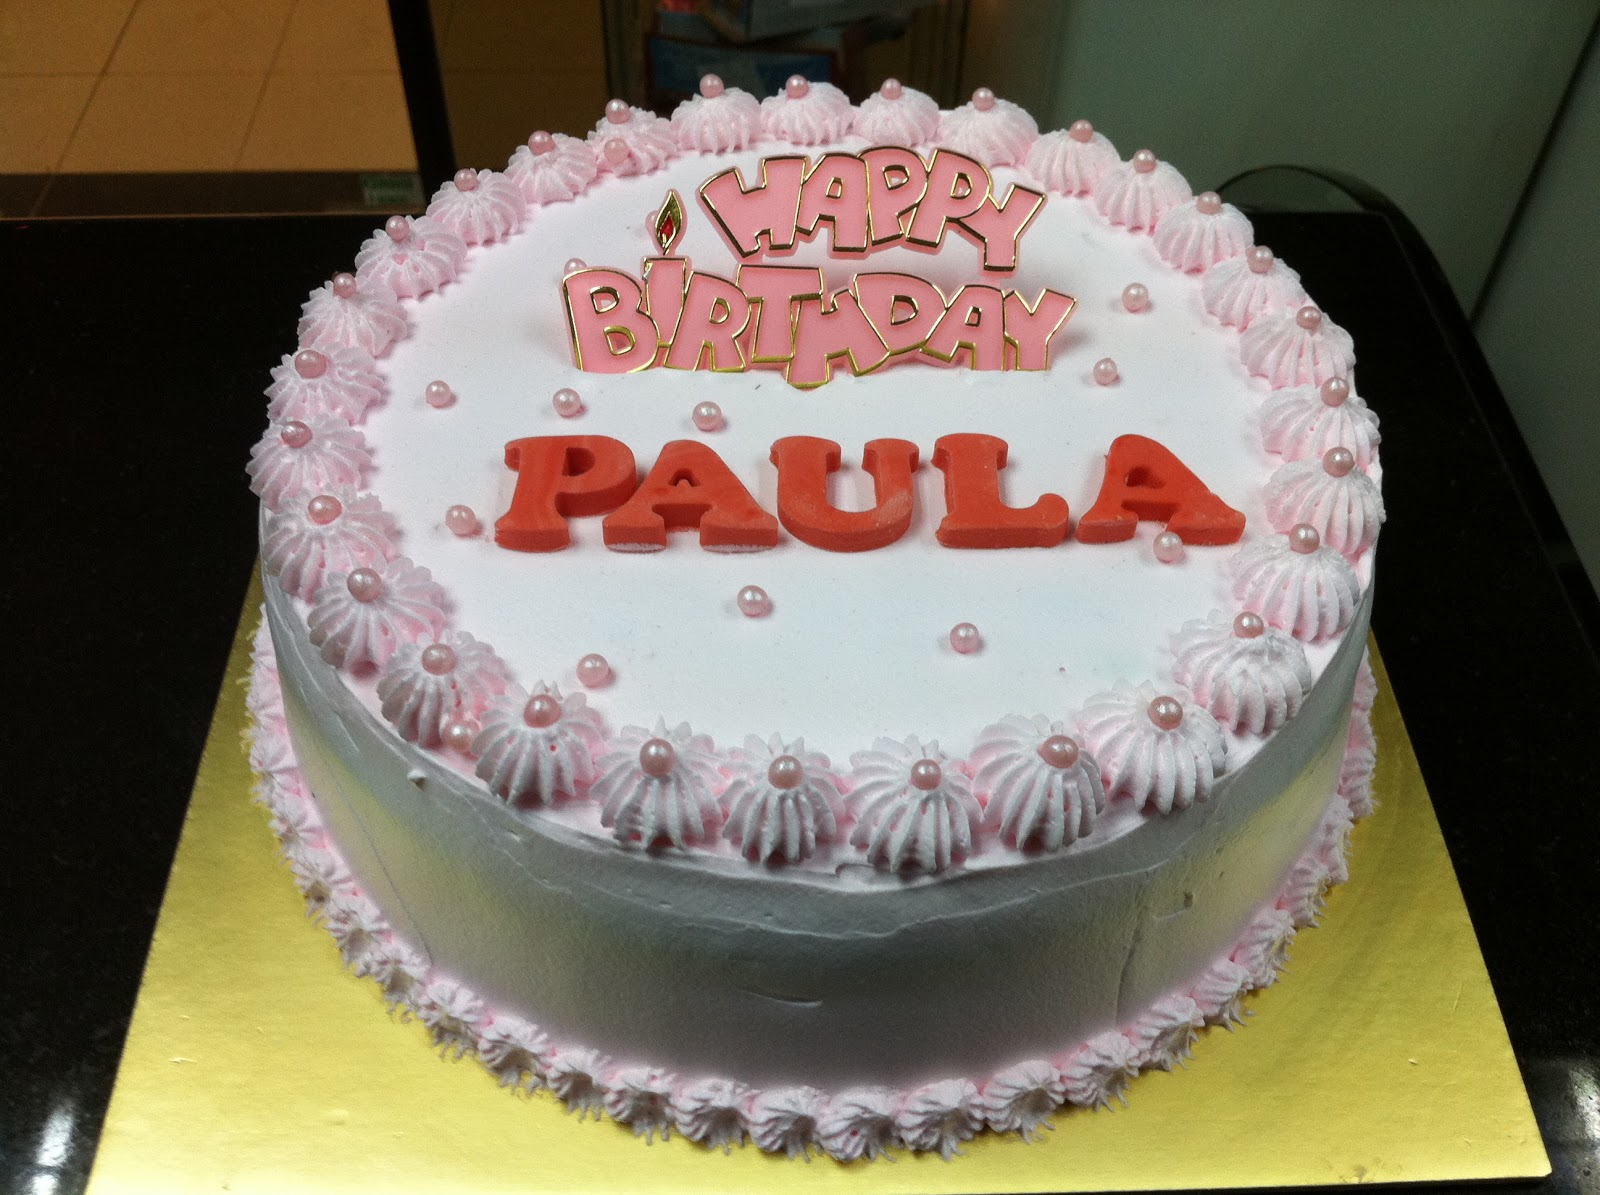 Birthday Cake Images Pic : Haven Bakery: Paula Birthday cake